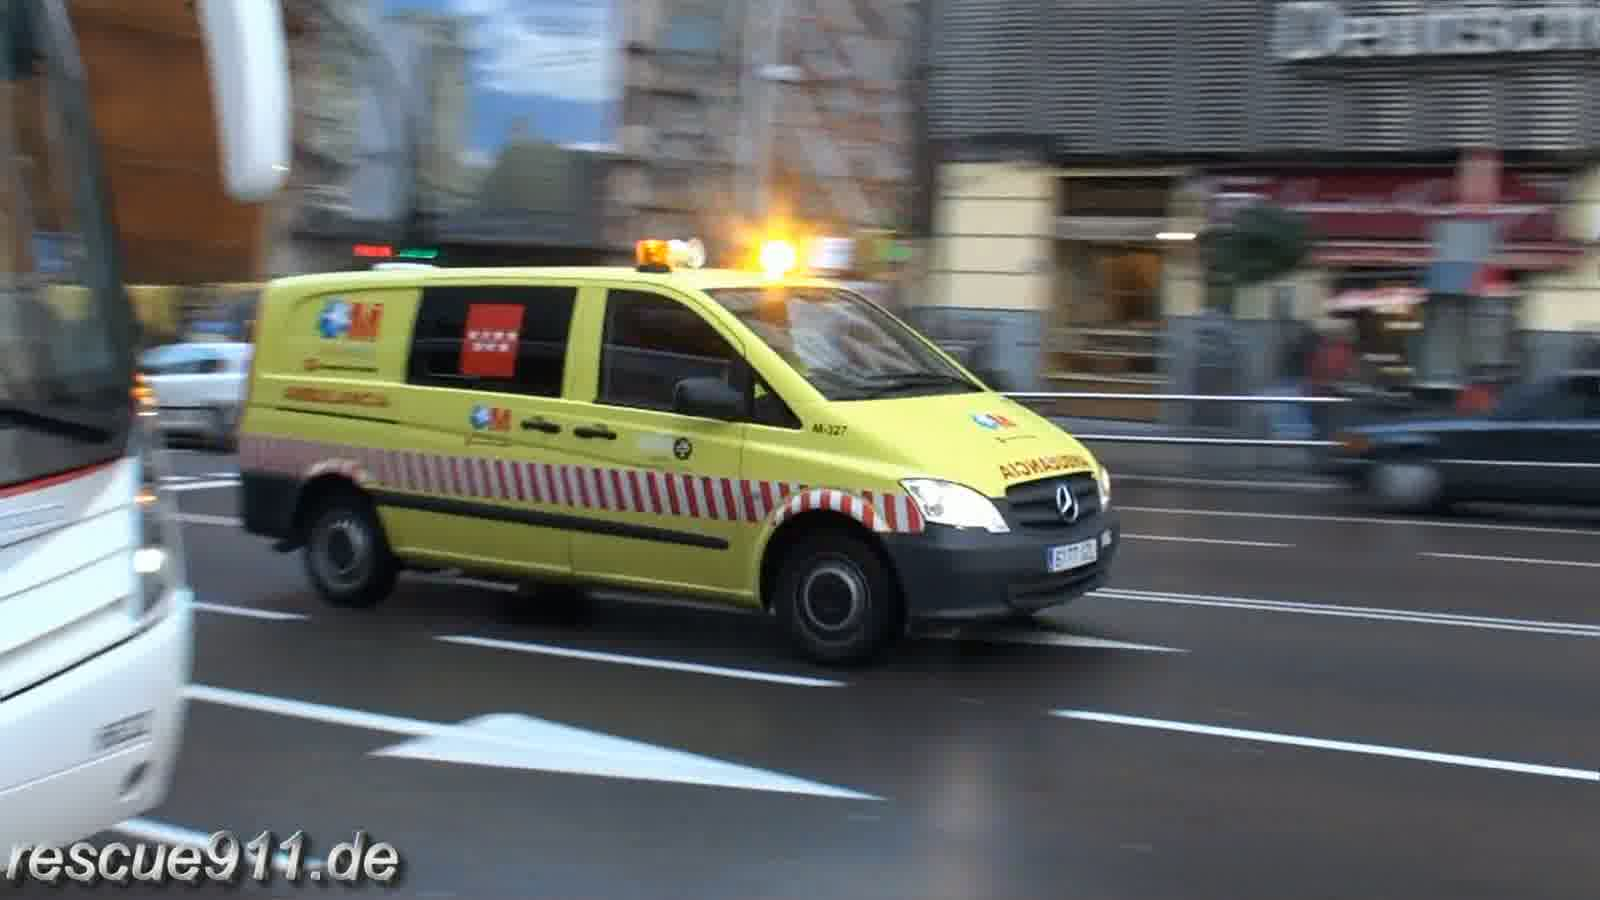 Ambulancia Salud Madrid (collection) (stream)